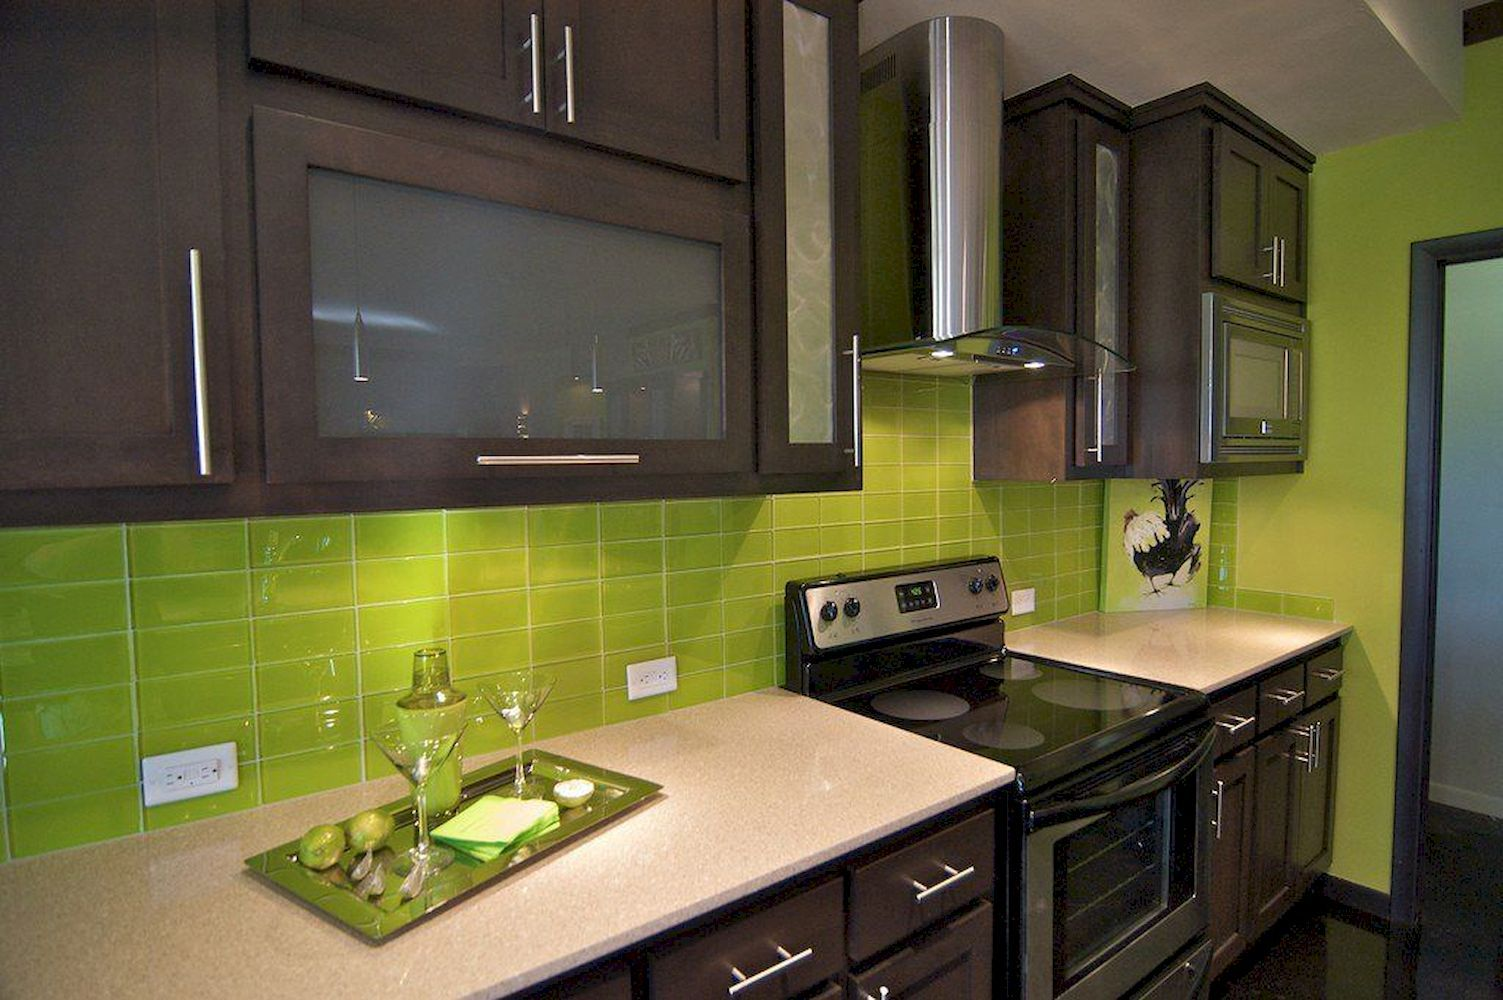 how to choose best types of cabinet lighting for ambient on 69 Types Of Kitchen Tiles To Choose For A New Kitchen Design id=28834